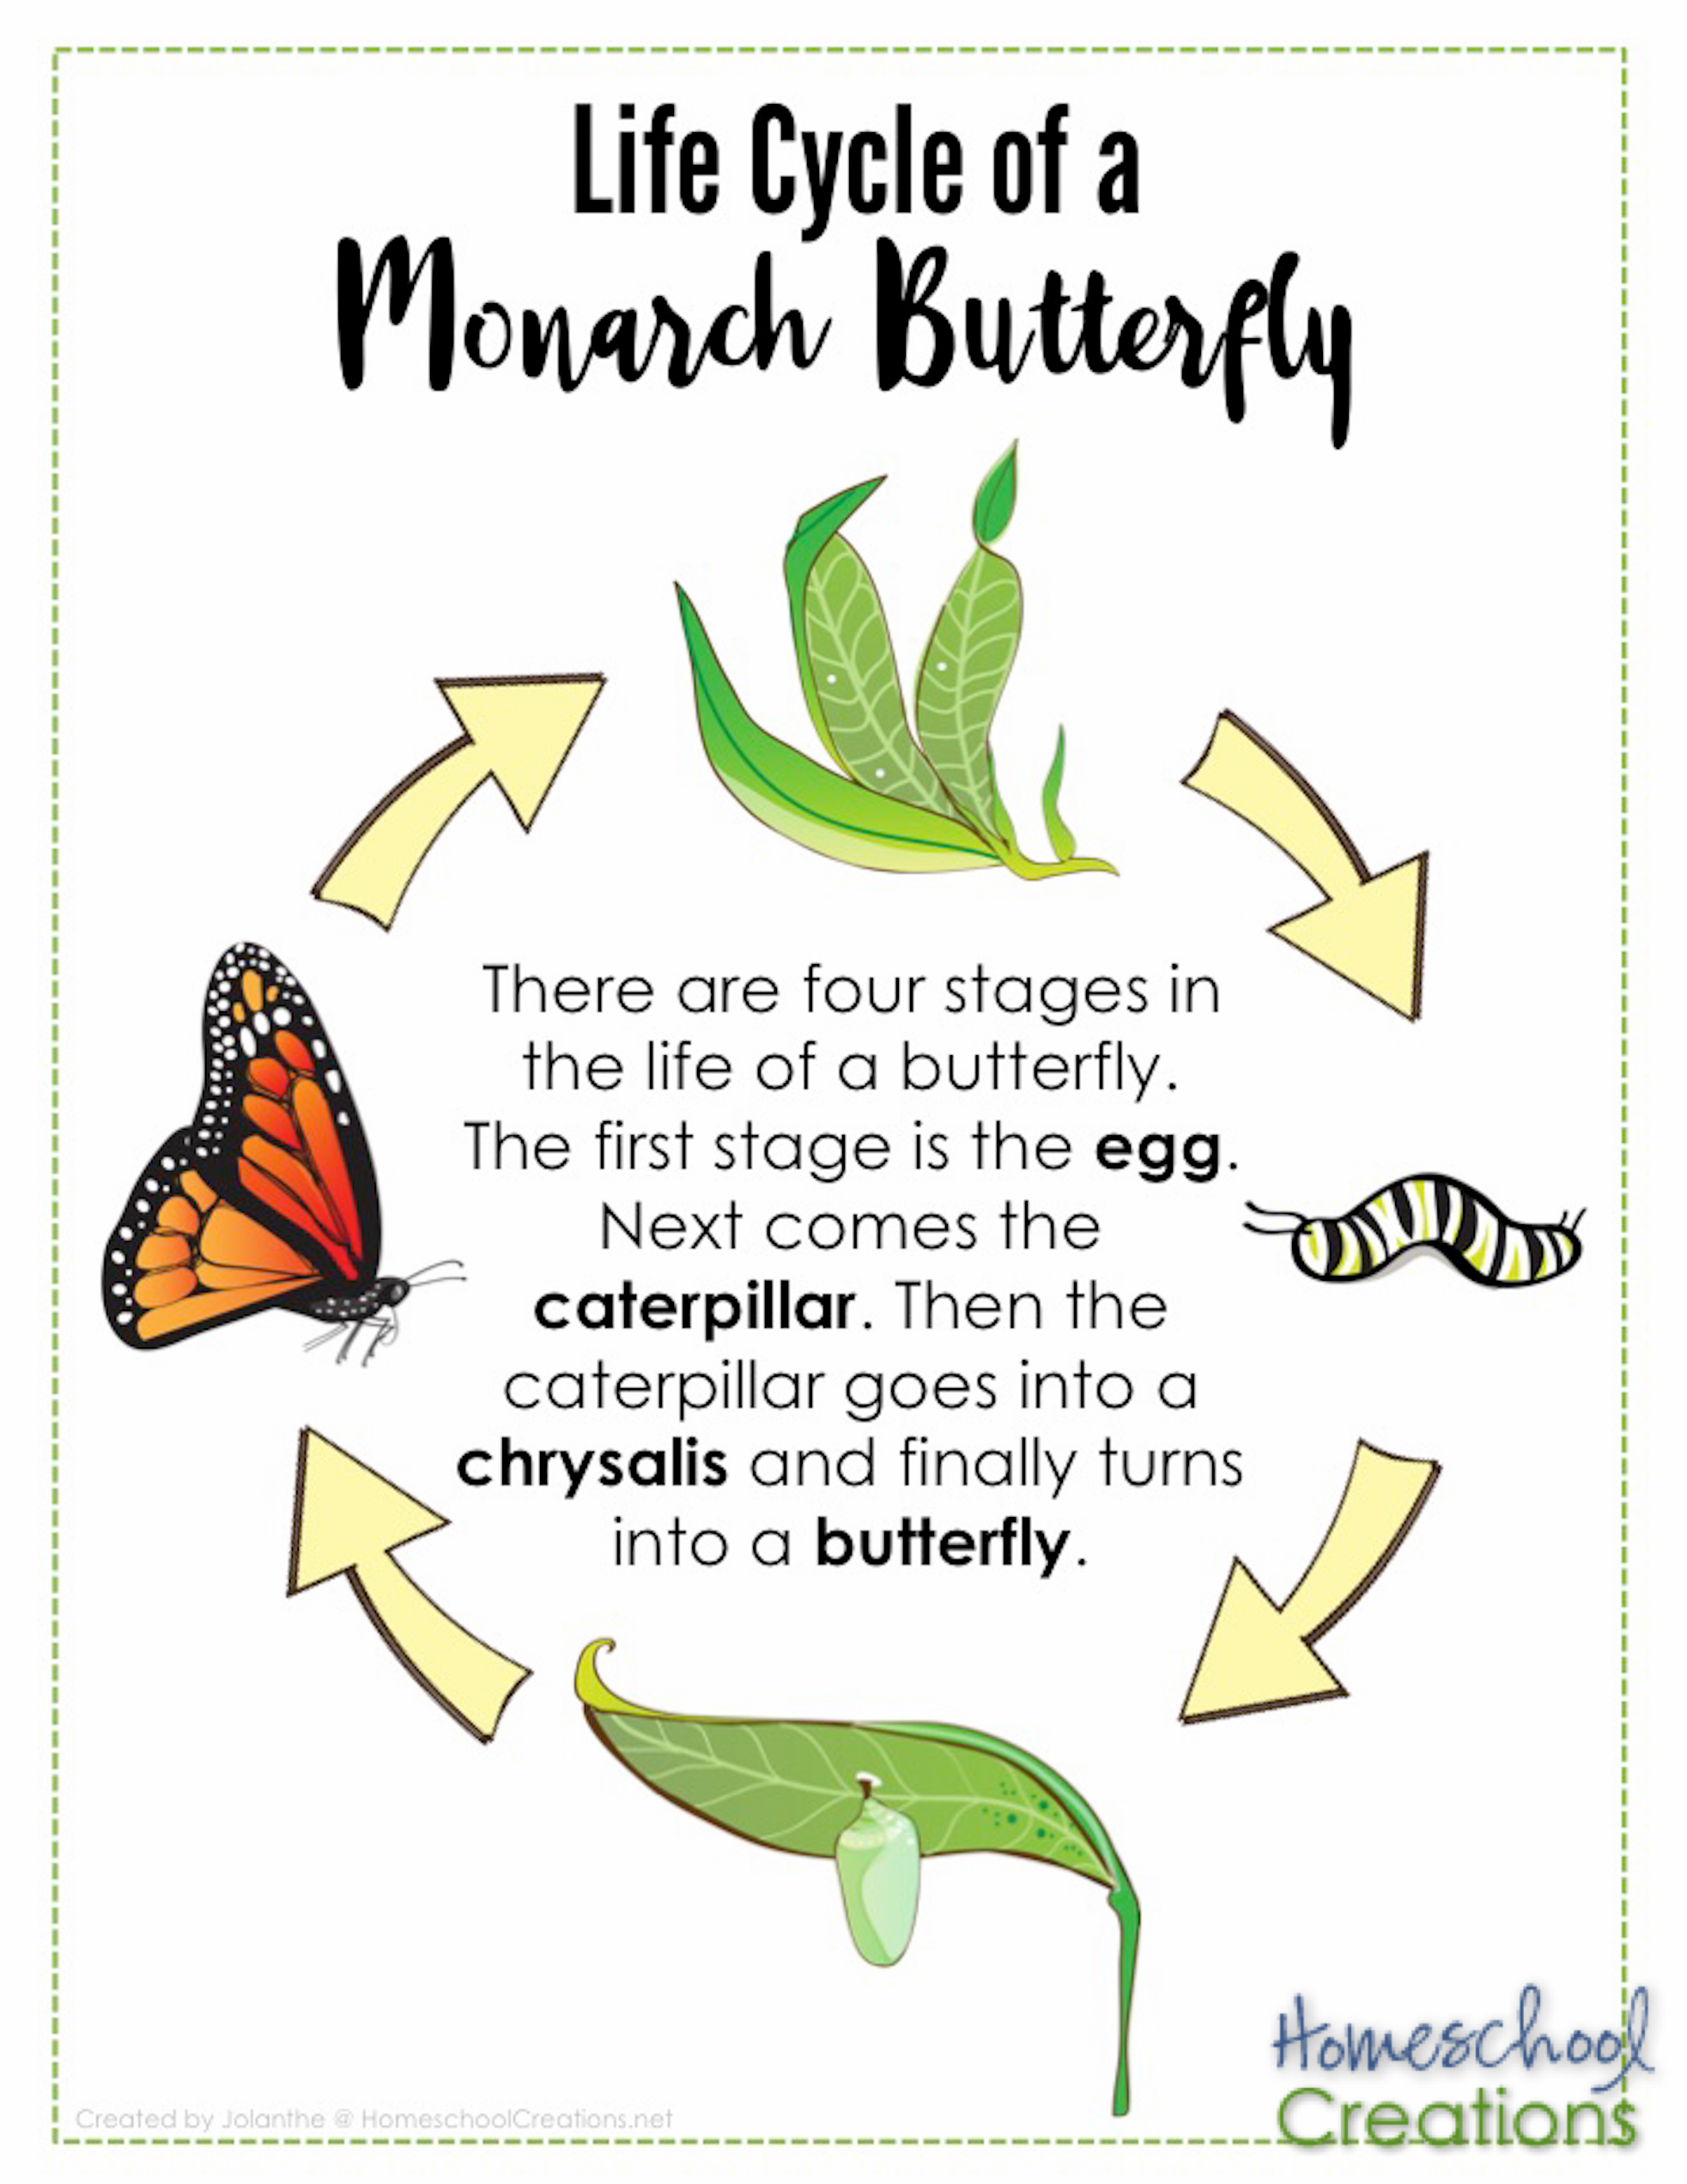 Life Cycle Of Monarch Butterfly Poster Homeschoolcreations